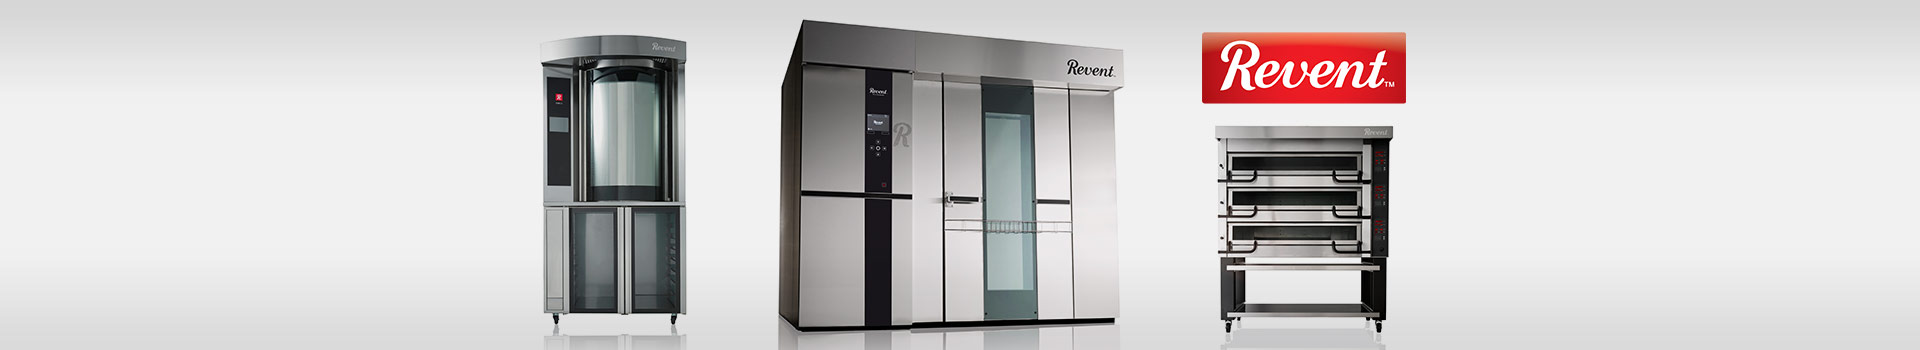 Revent Ovens for Dubau UAE GCC Jordan